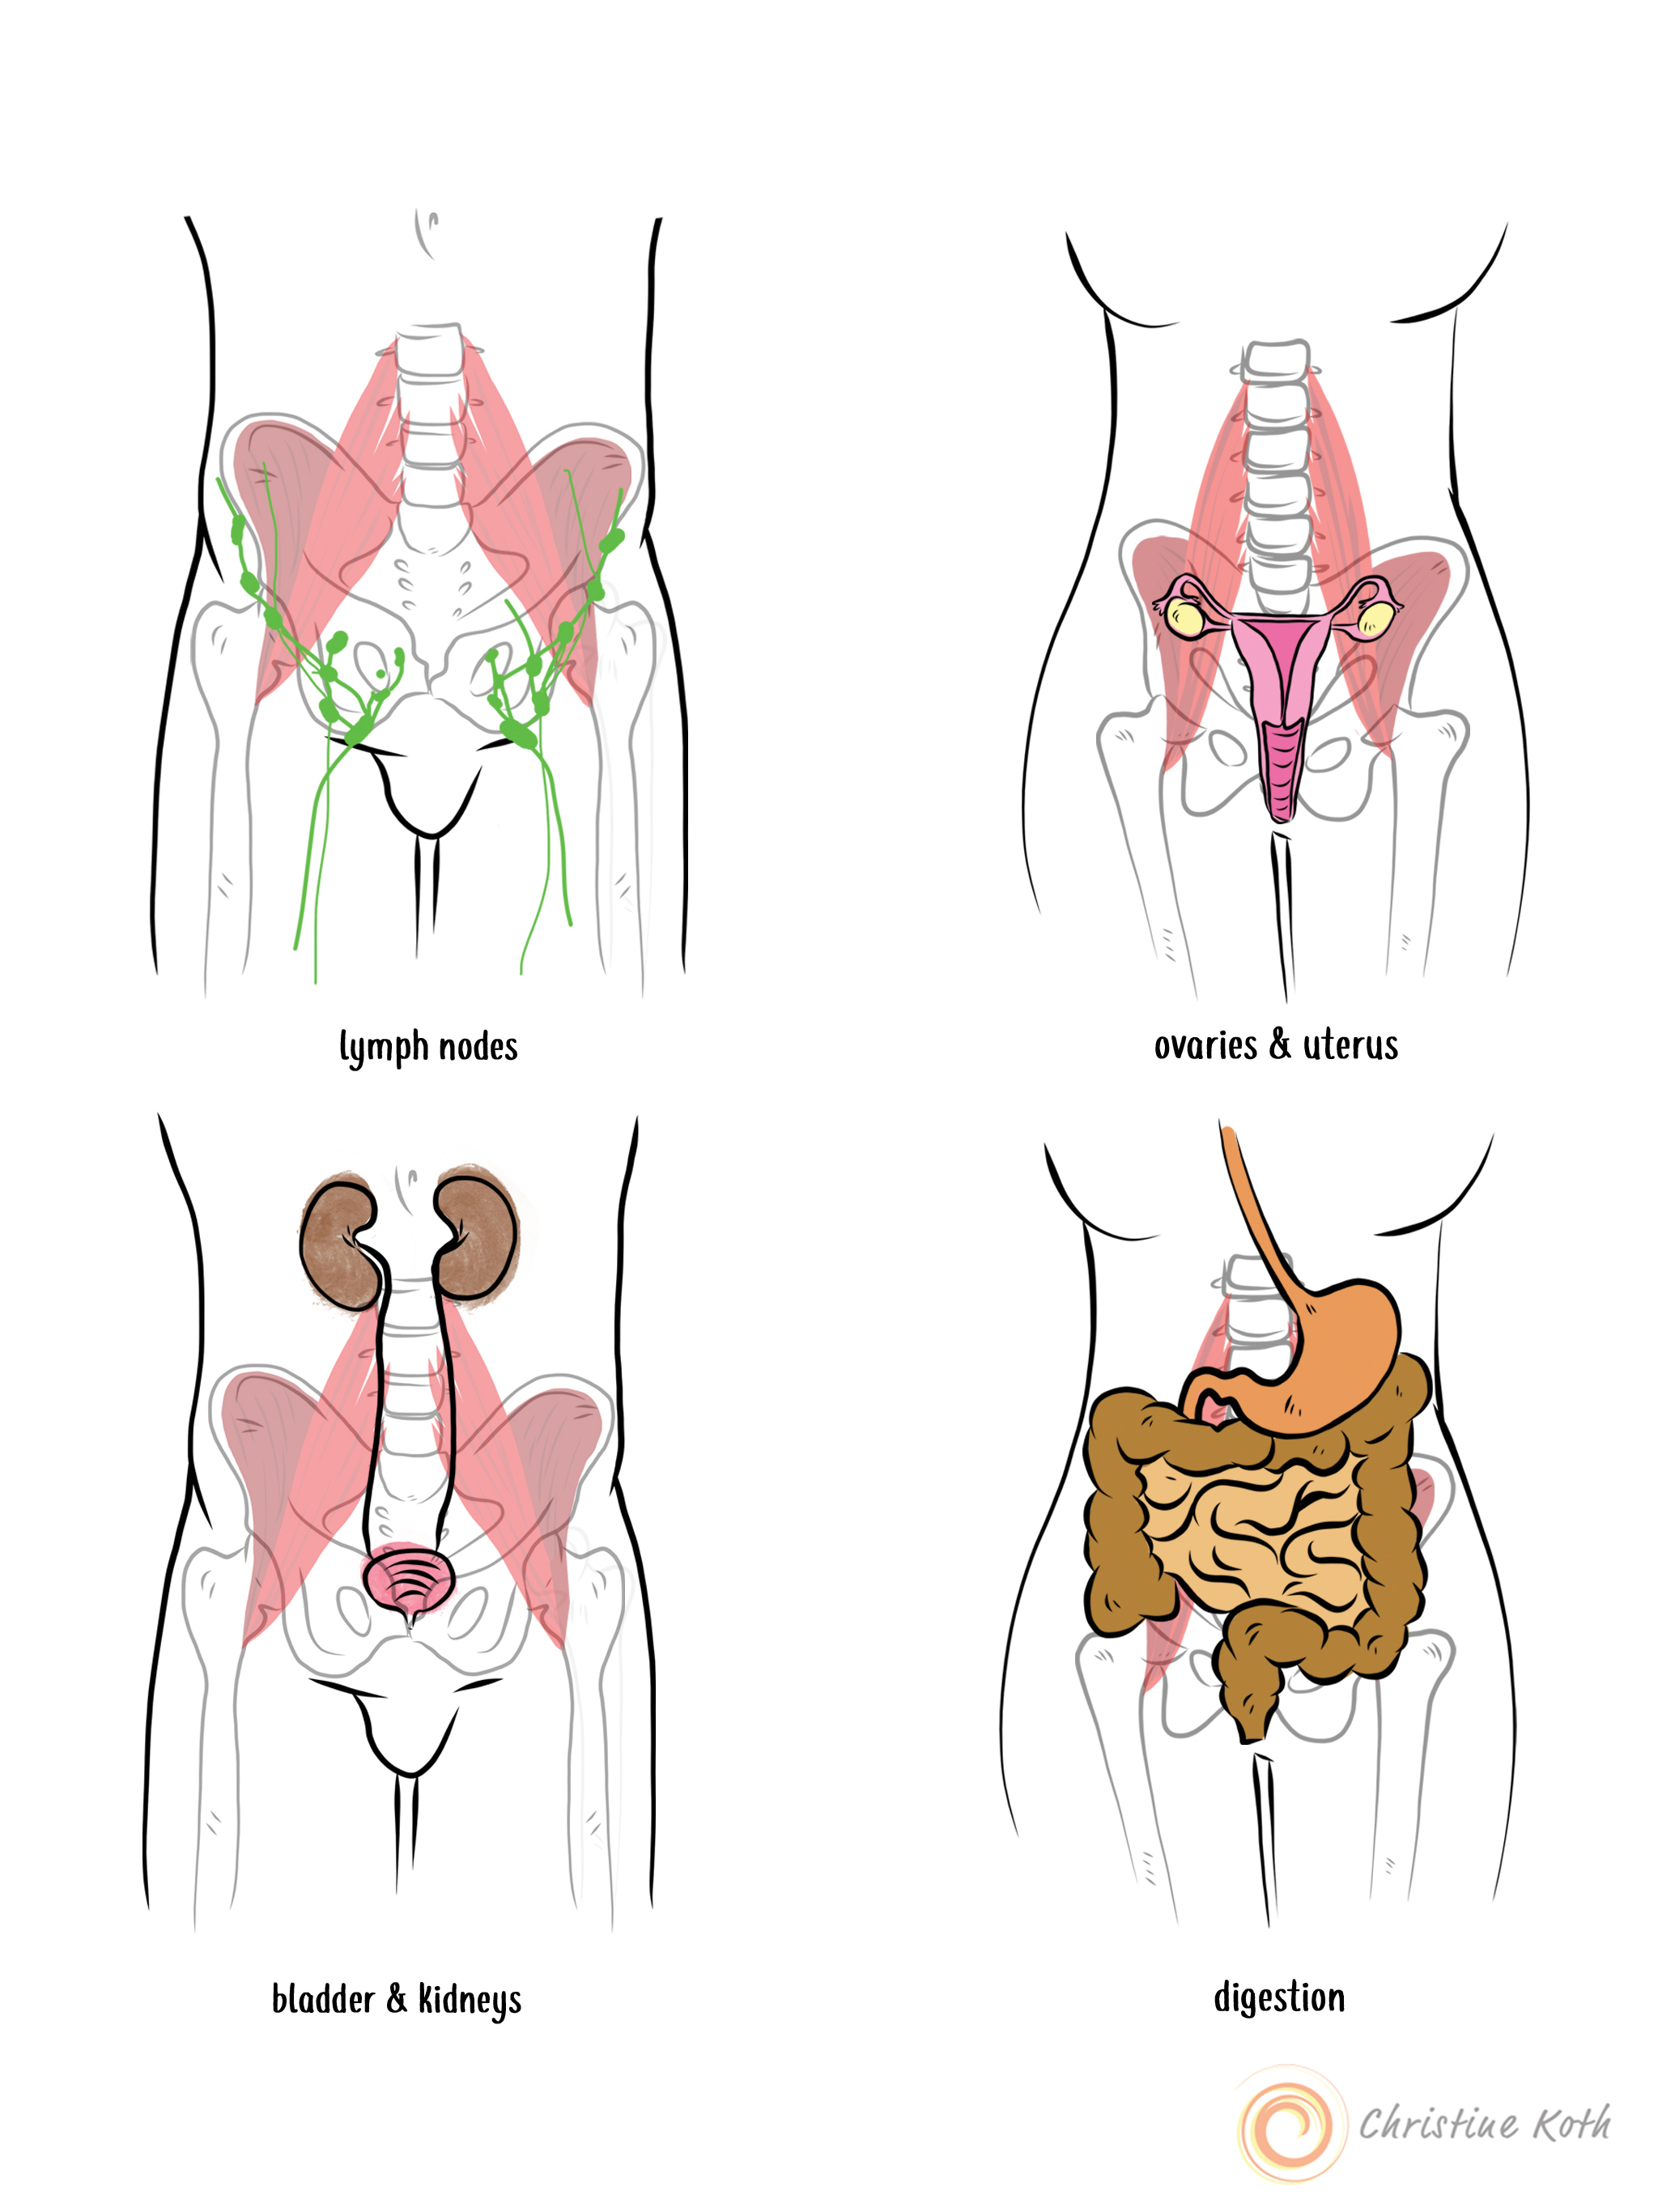 The iliacus and psoas are located adjacent to many of the abdominal structures